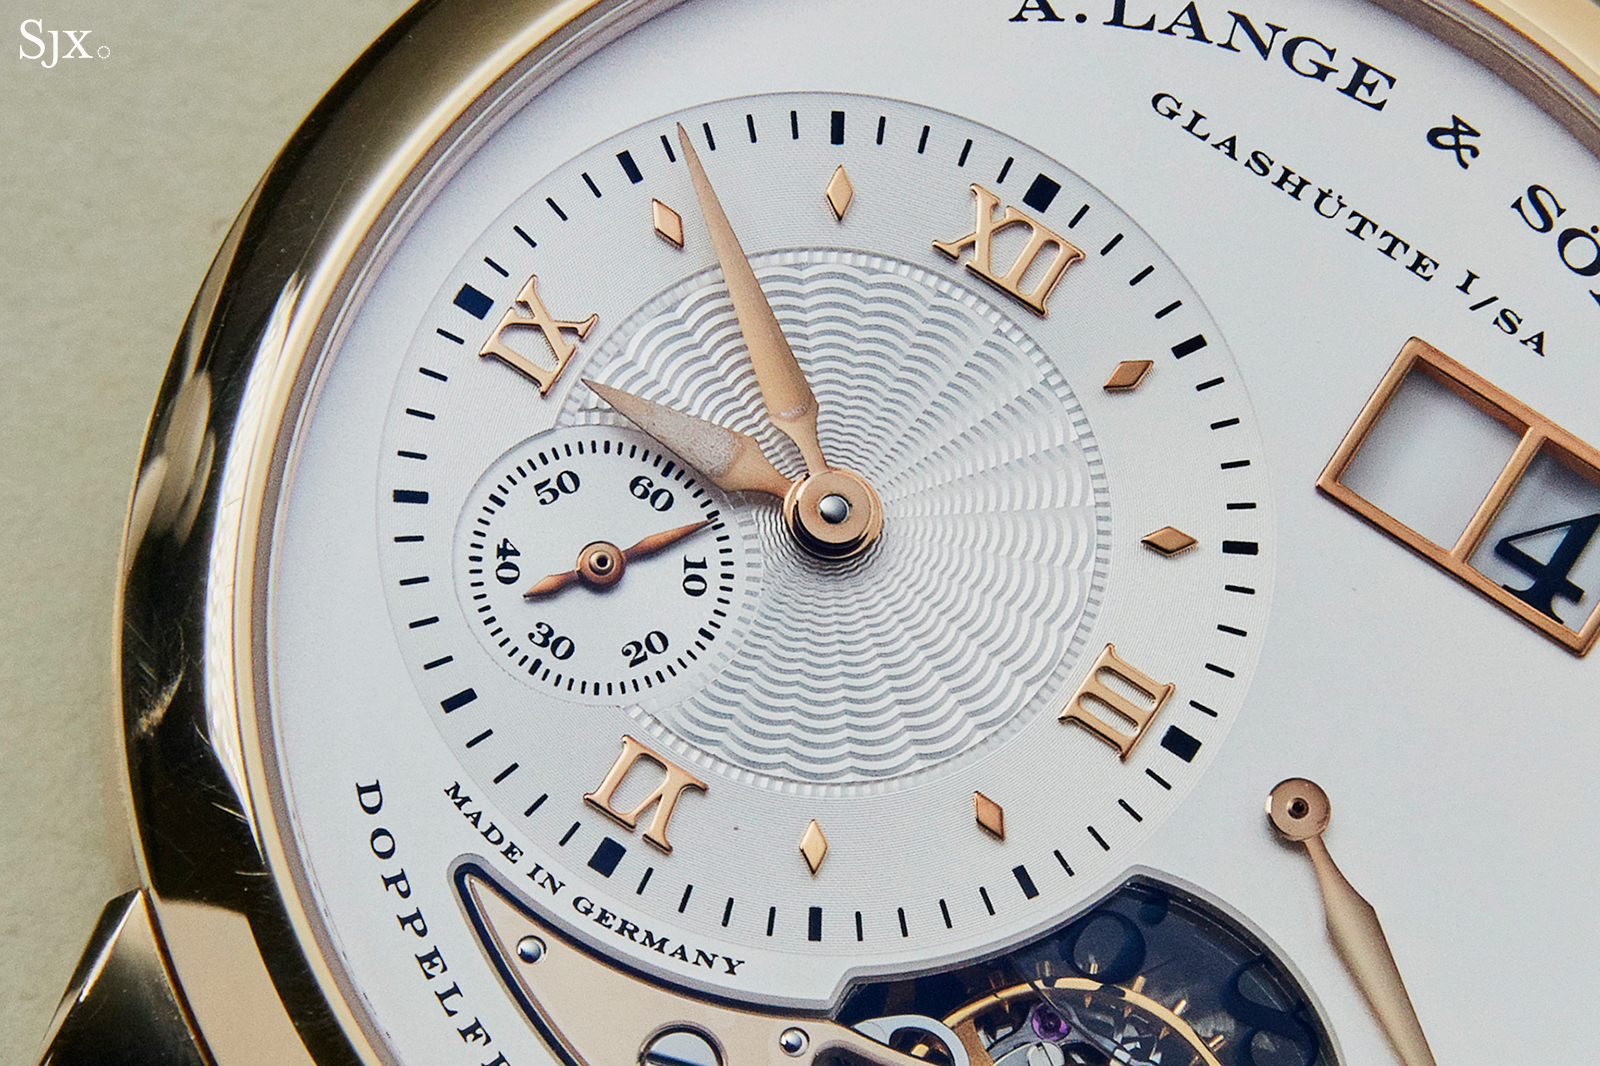 A Lange & Söhne Lange 1 Tourbillon in Honey Gold dial